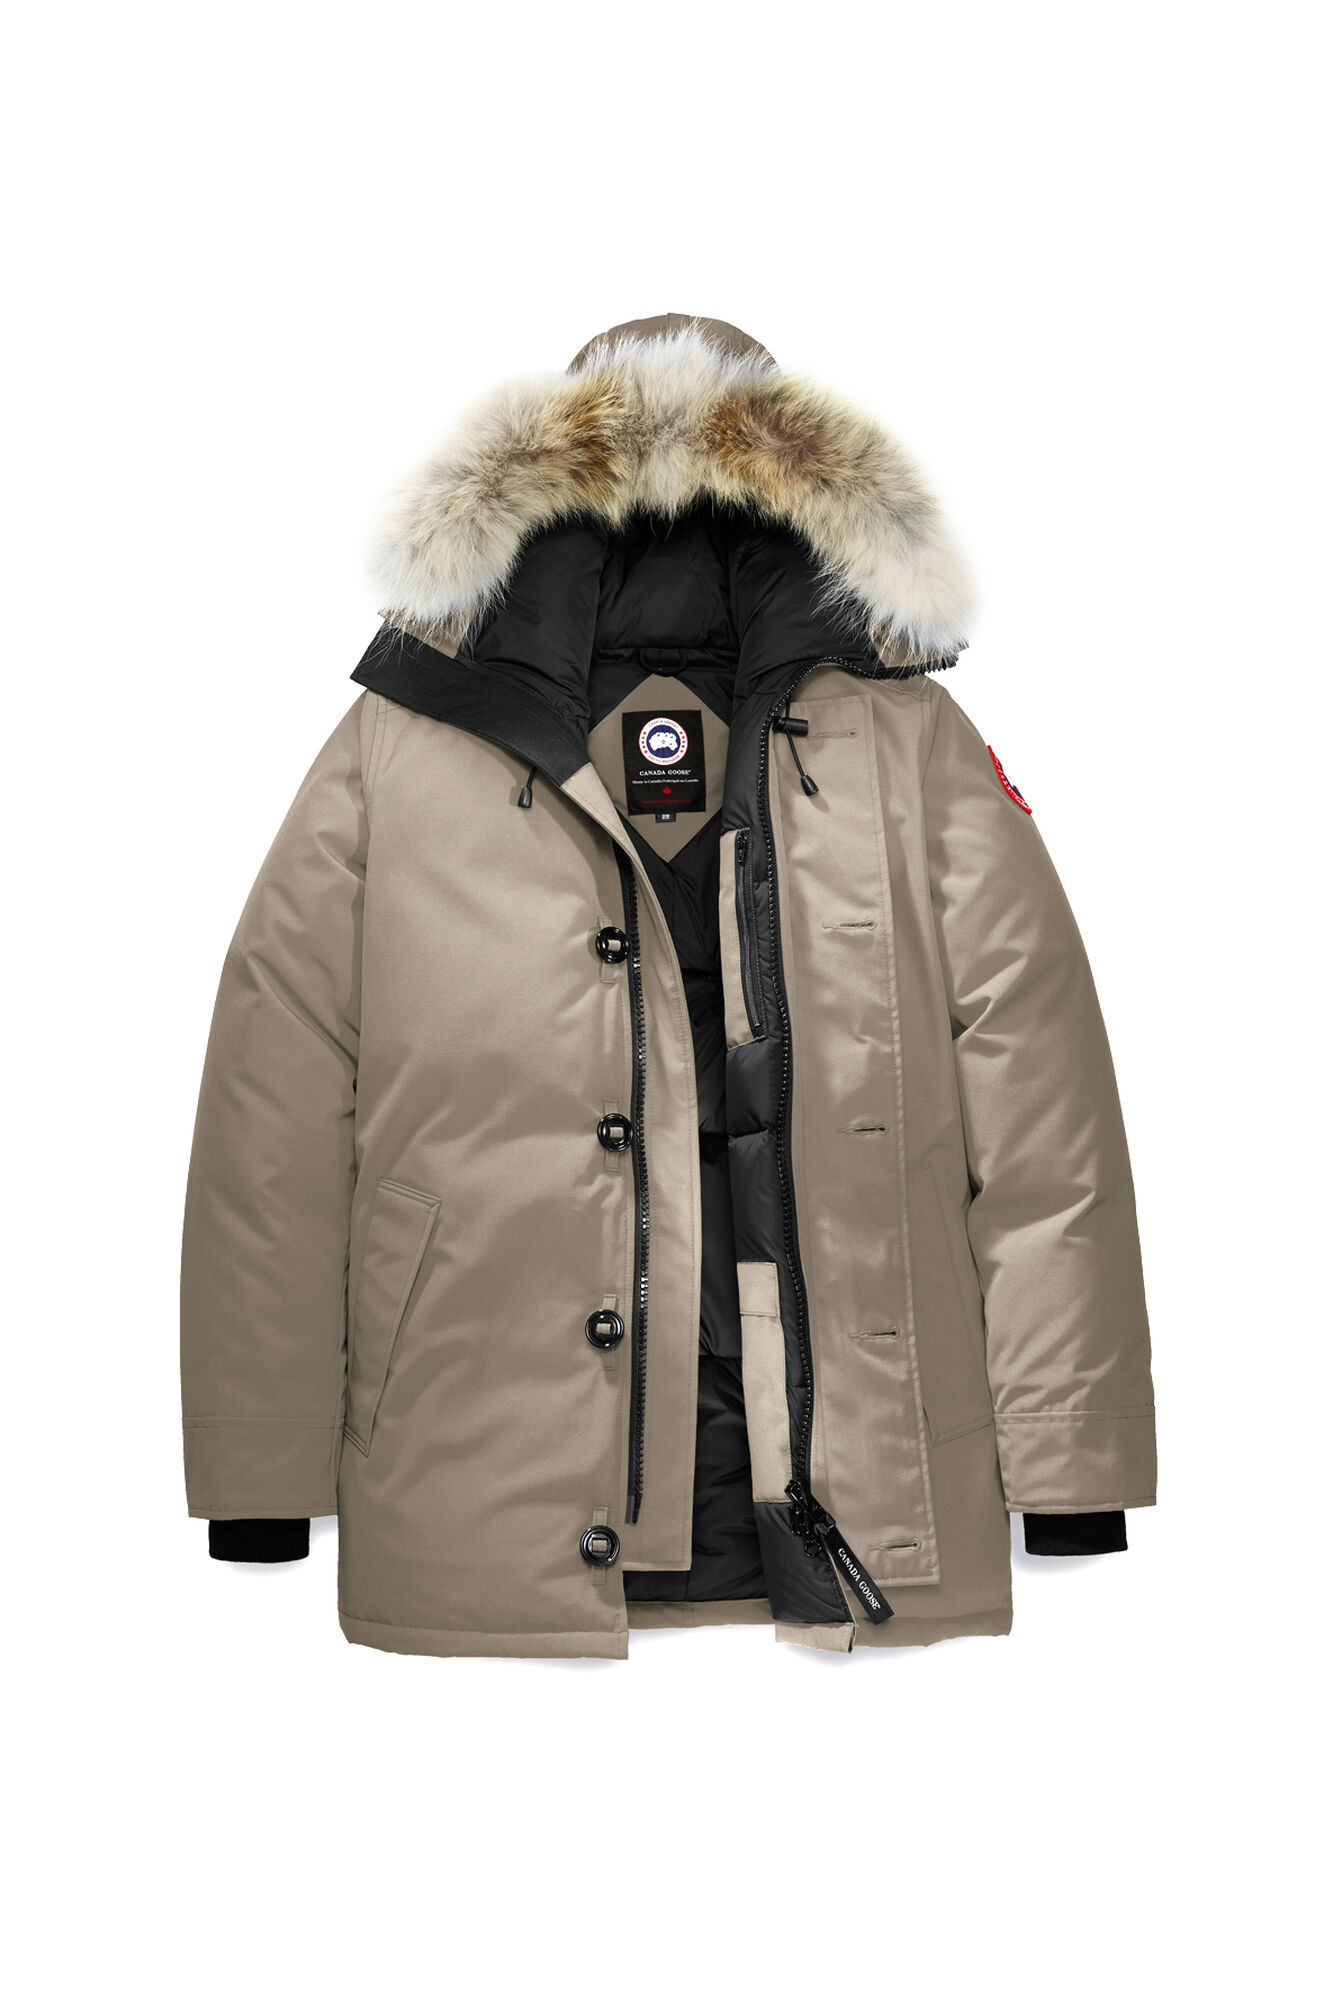 Canada Goose toronto outlet shop - Men's Arctic Program Chateau Parka | Canada Goose?